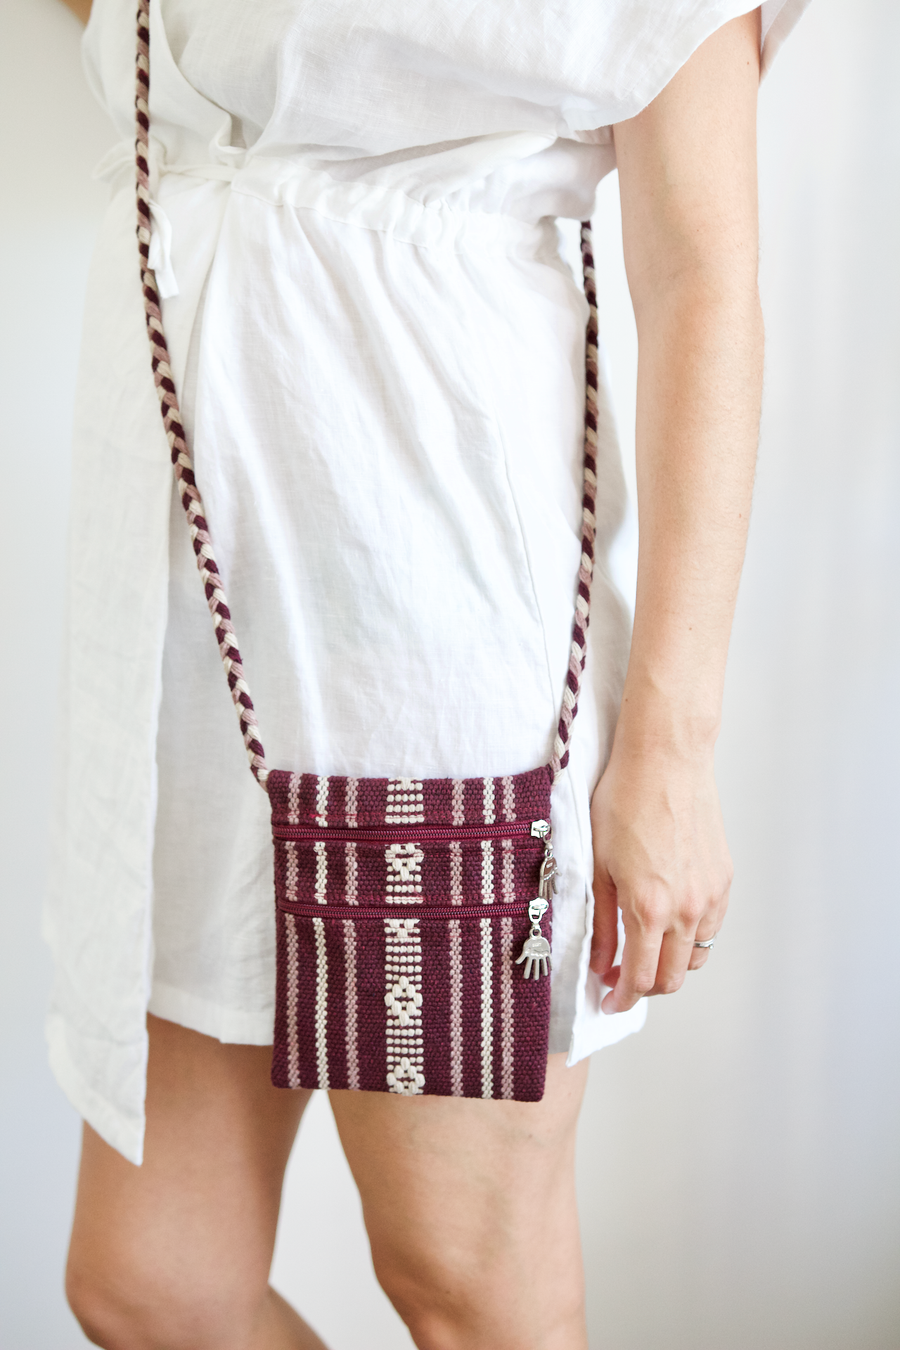 Santo Bag - Burgundy - Small